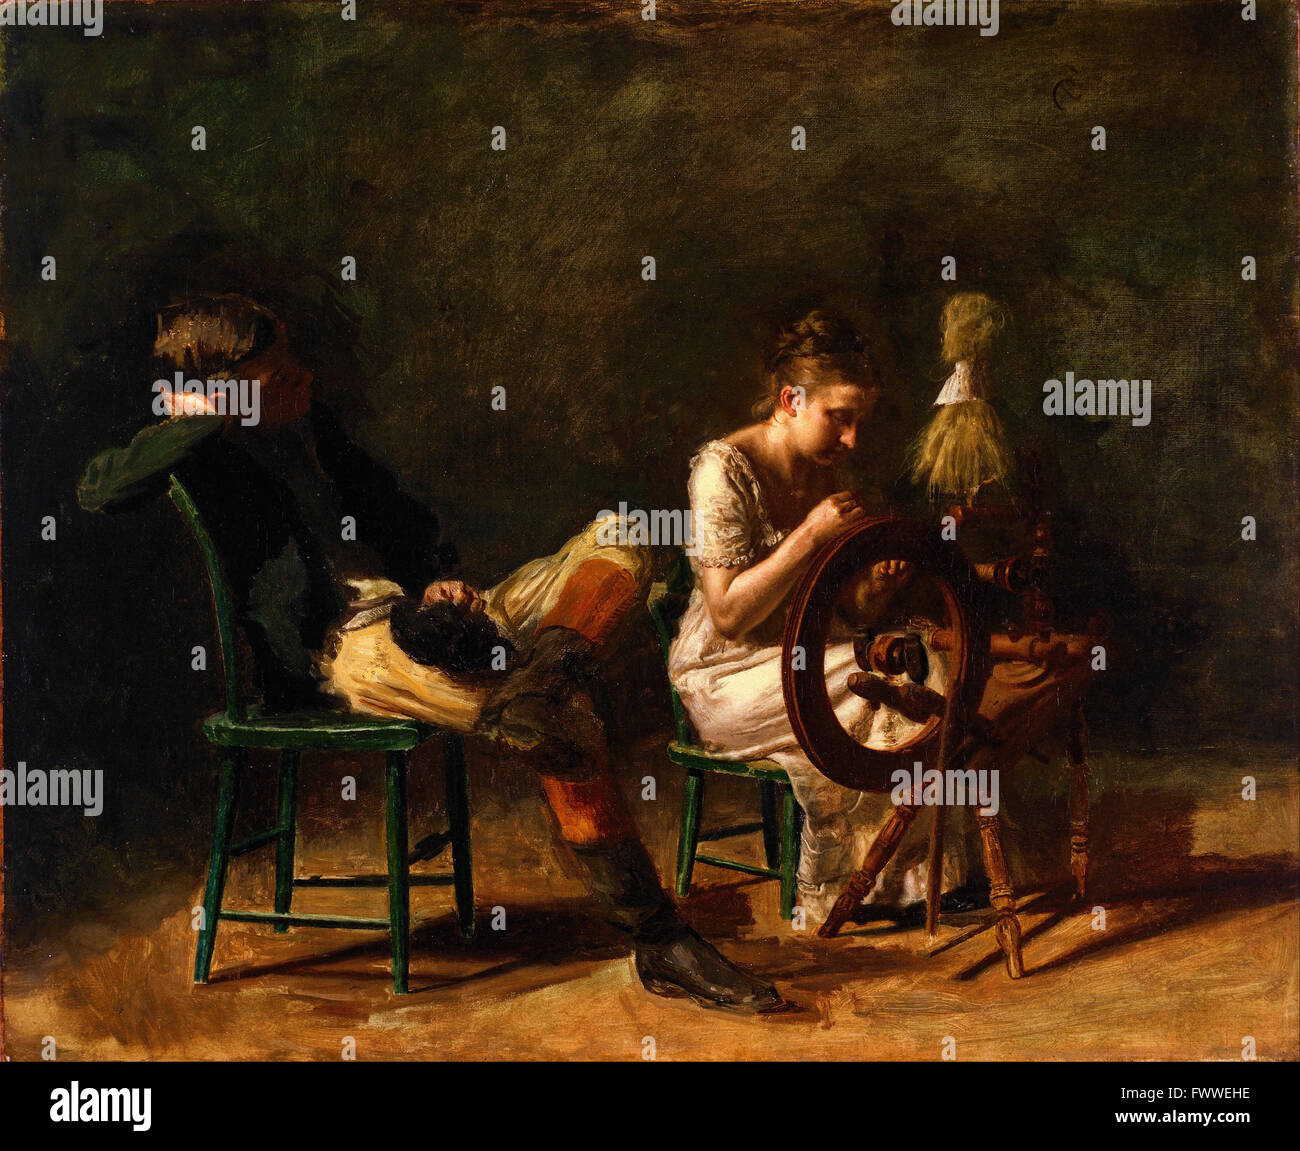 Thomas Eakins - The Courtship - de Young Museum - Stock Image